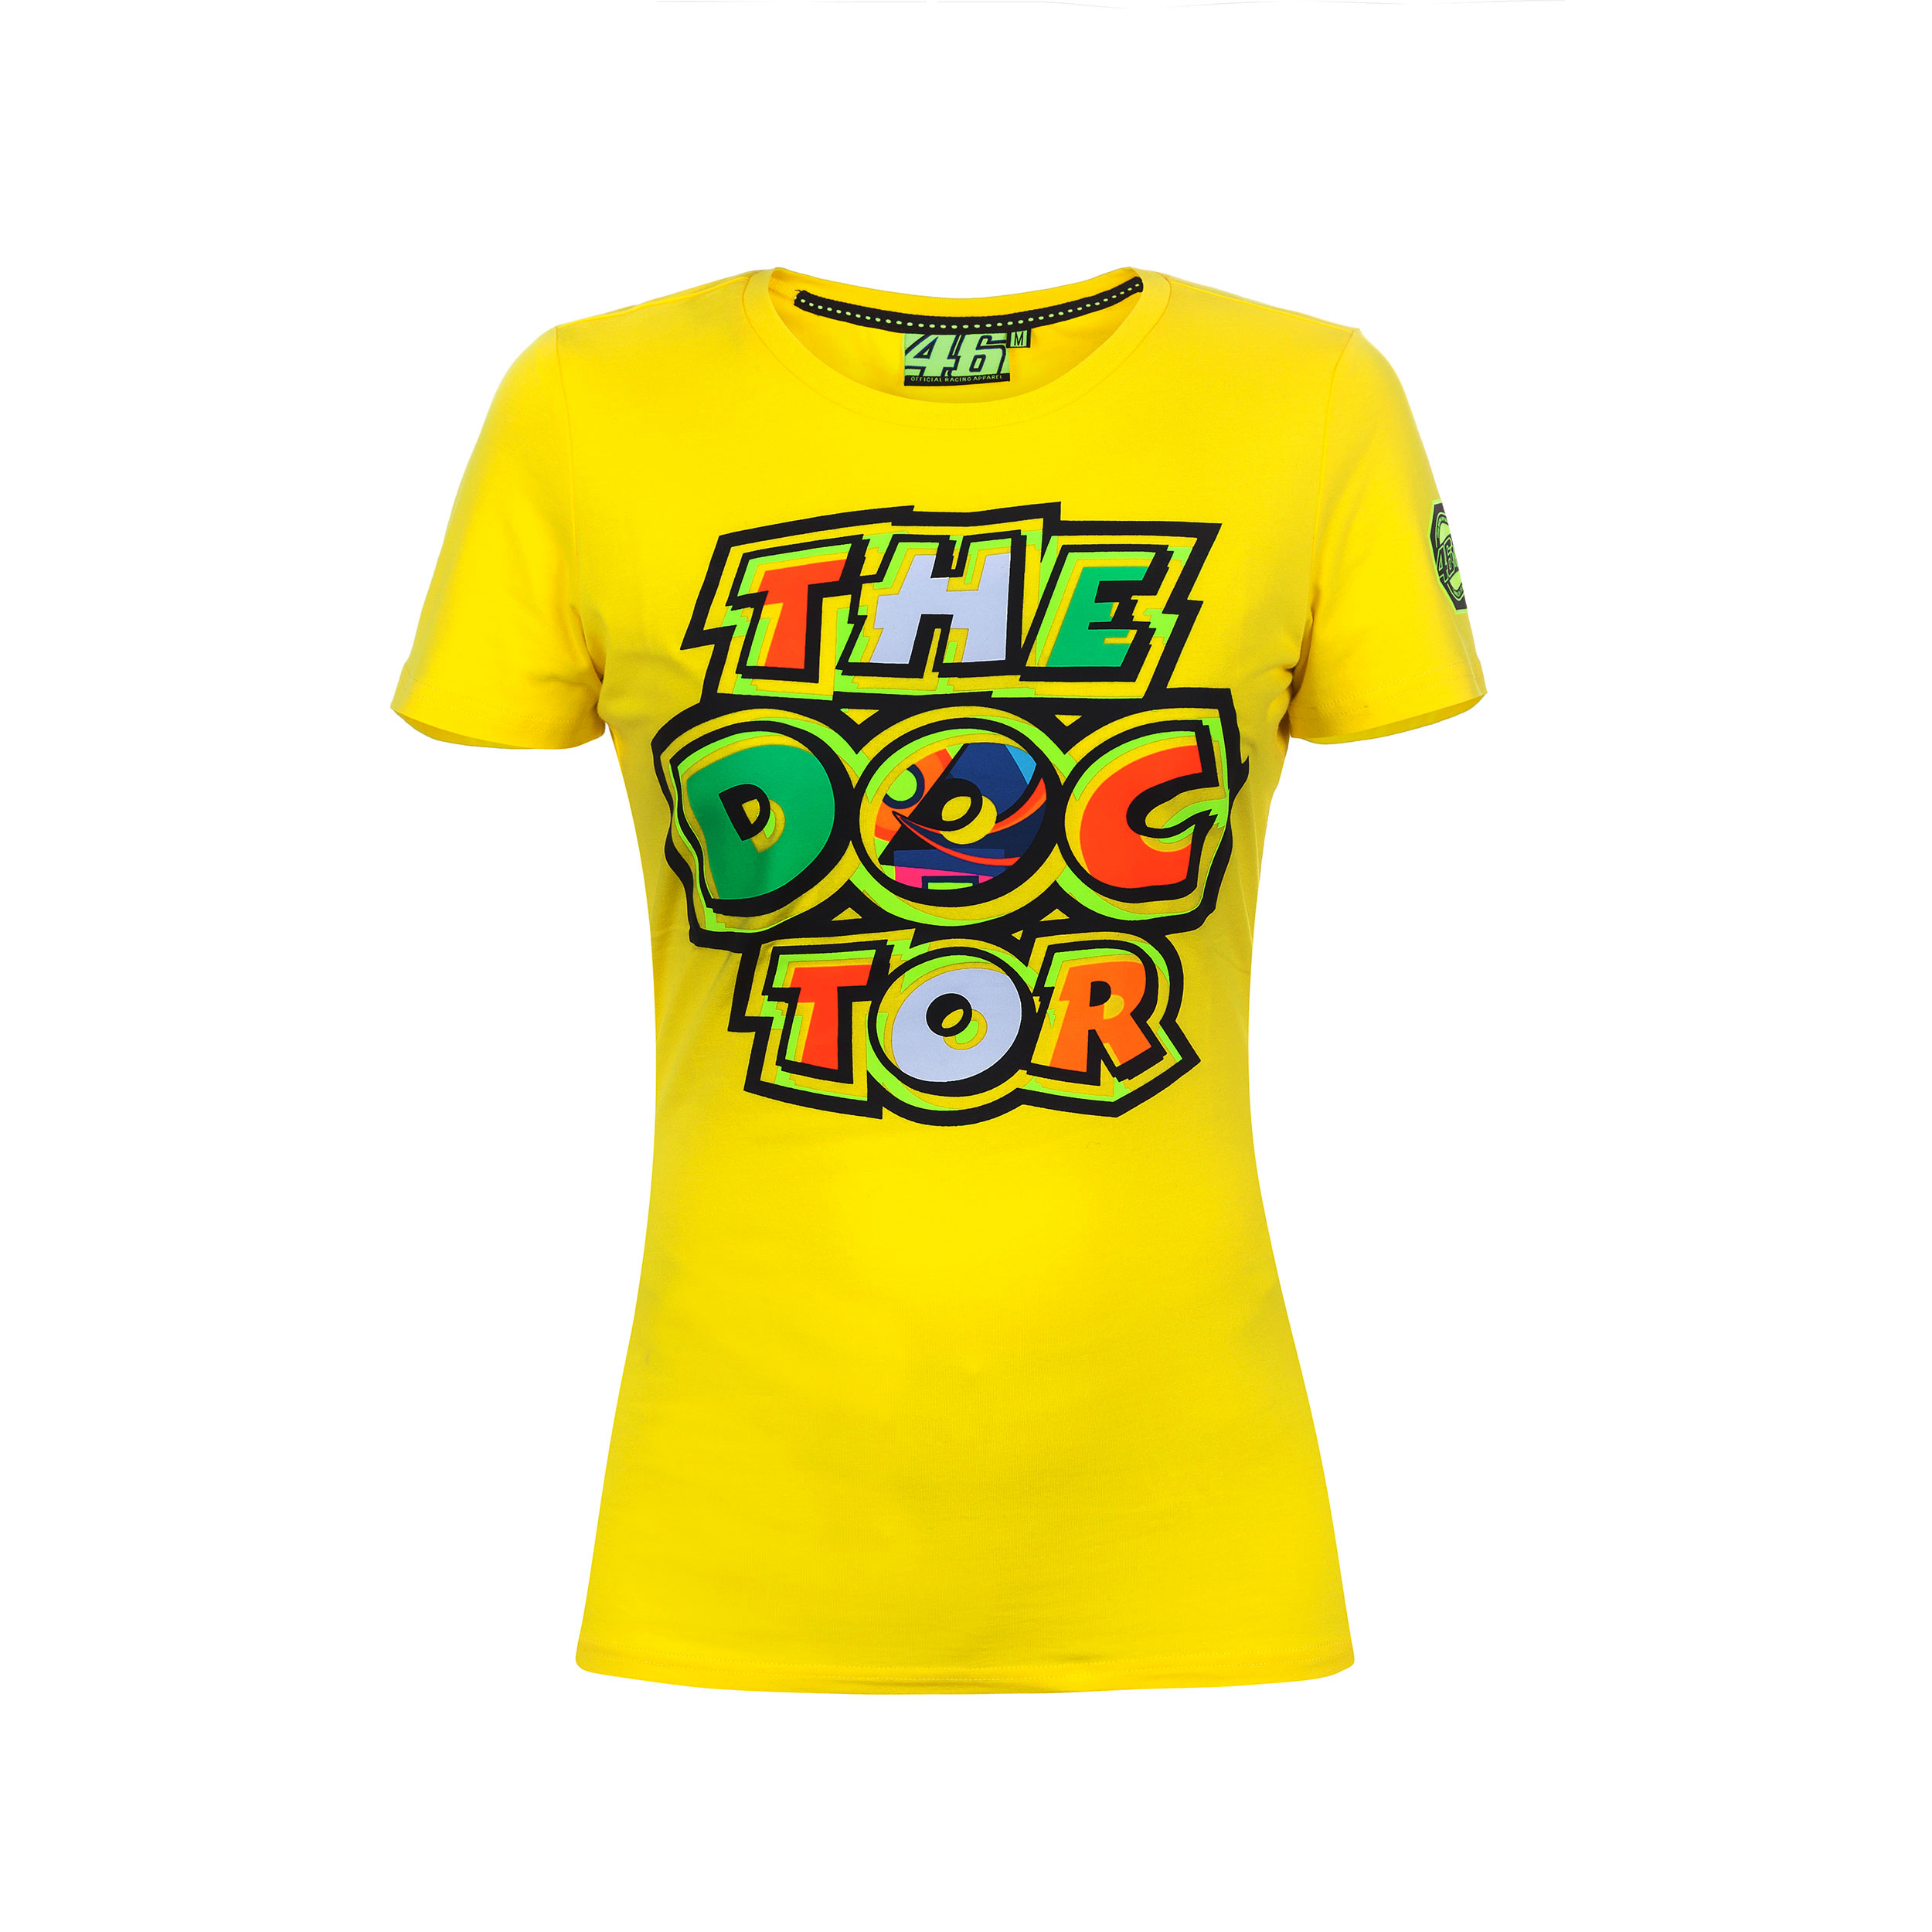 1dcc9c9e Details about Valentino Rossi VR46 Moto GP The Doctor Women's Yellow T-shirt  Official 2017